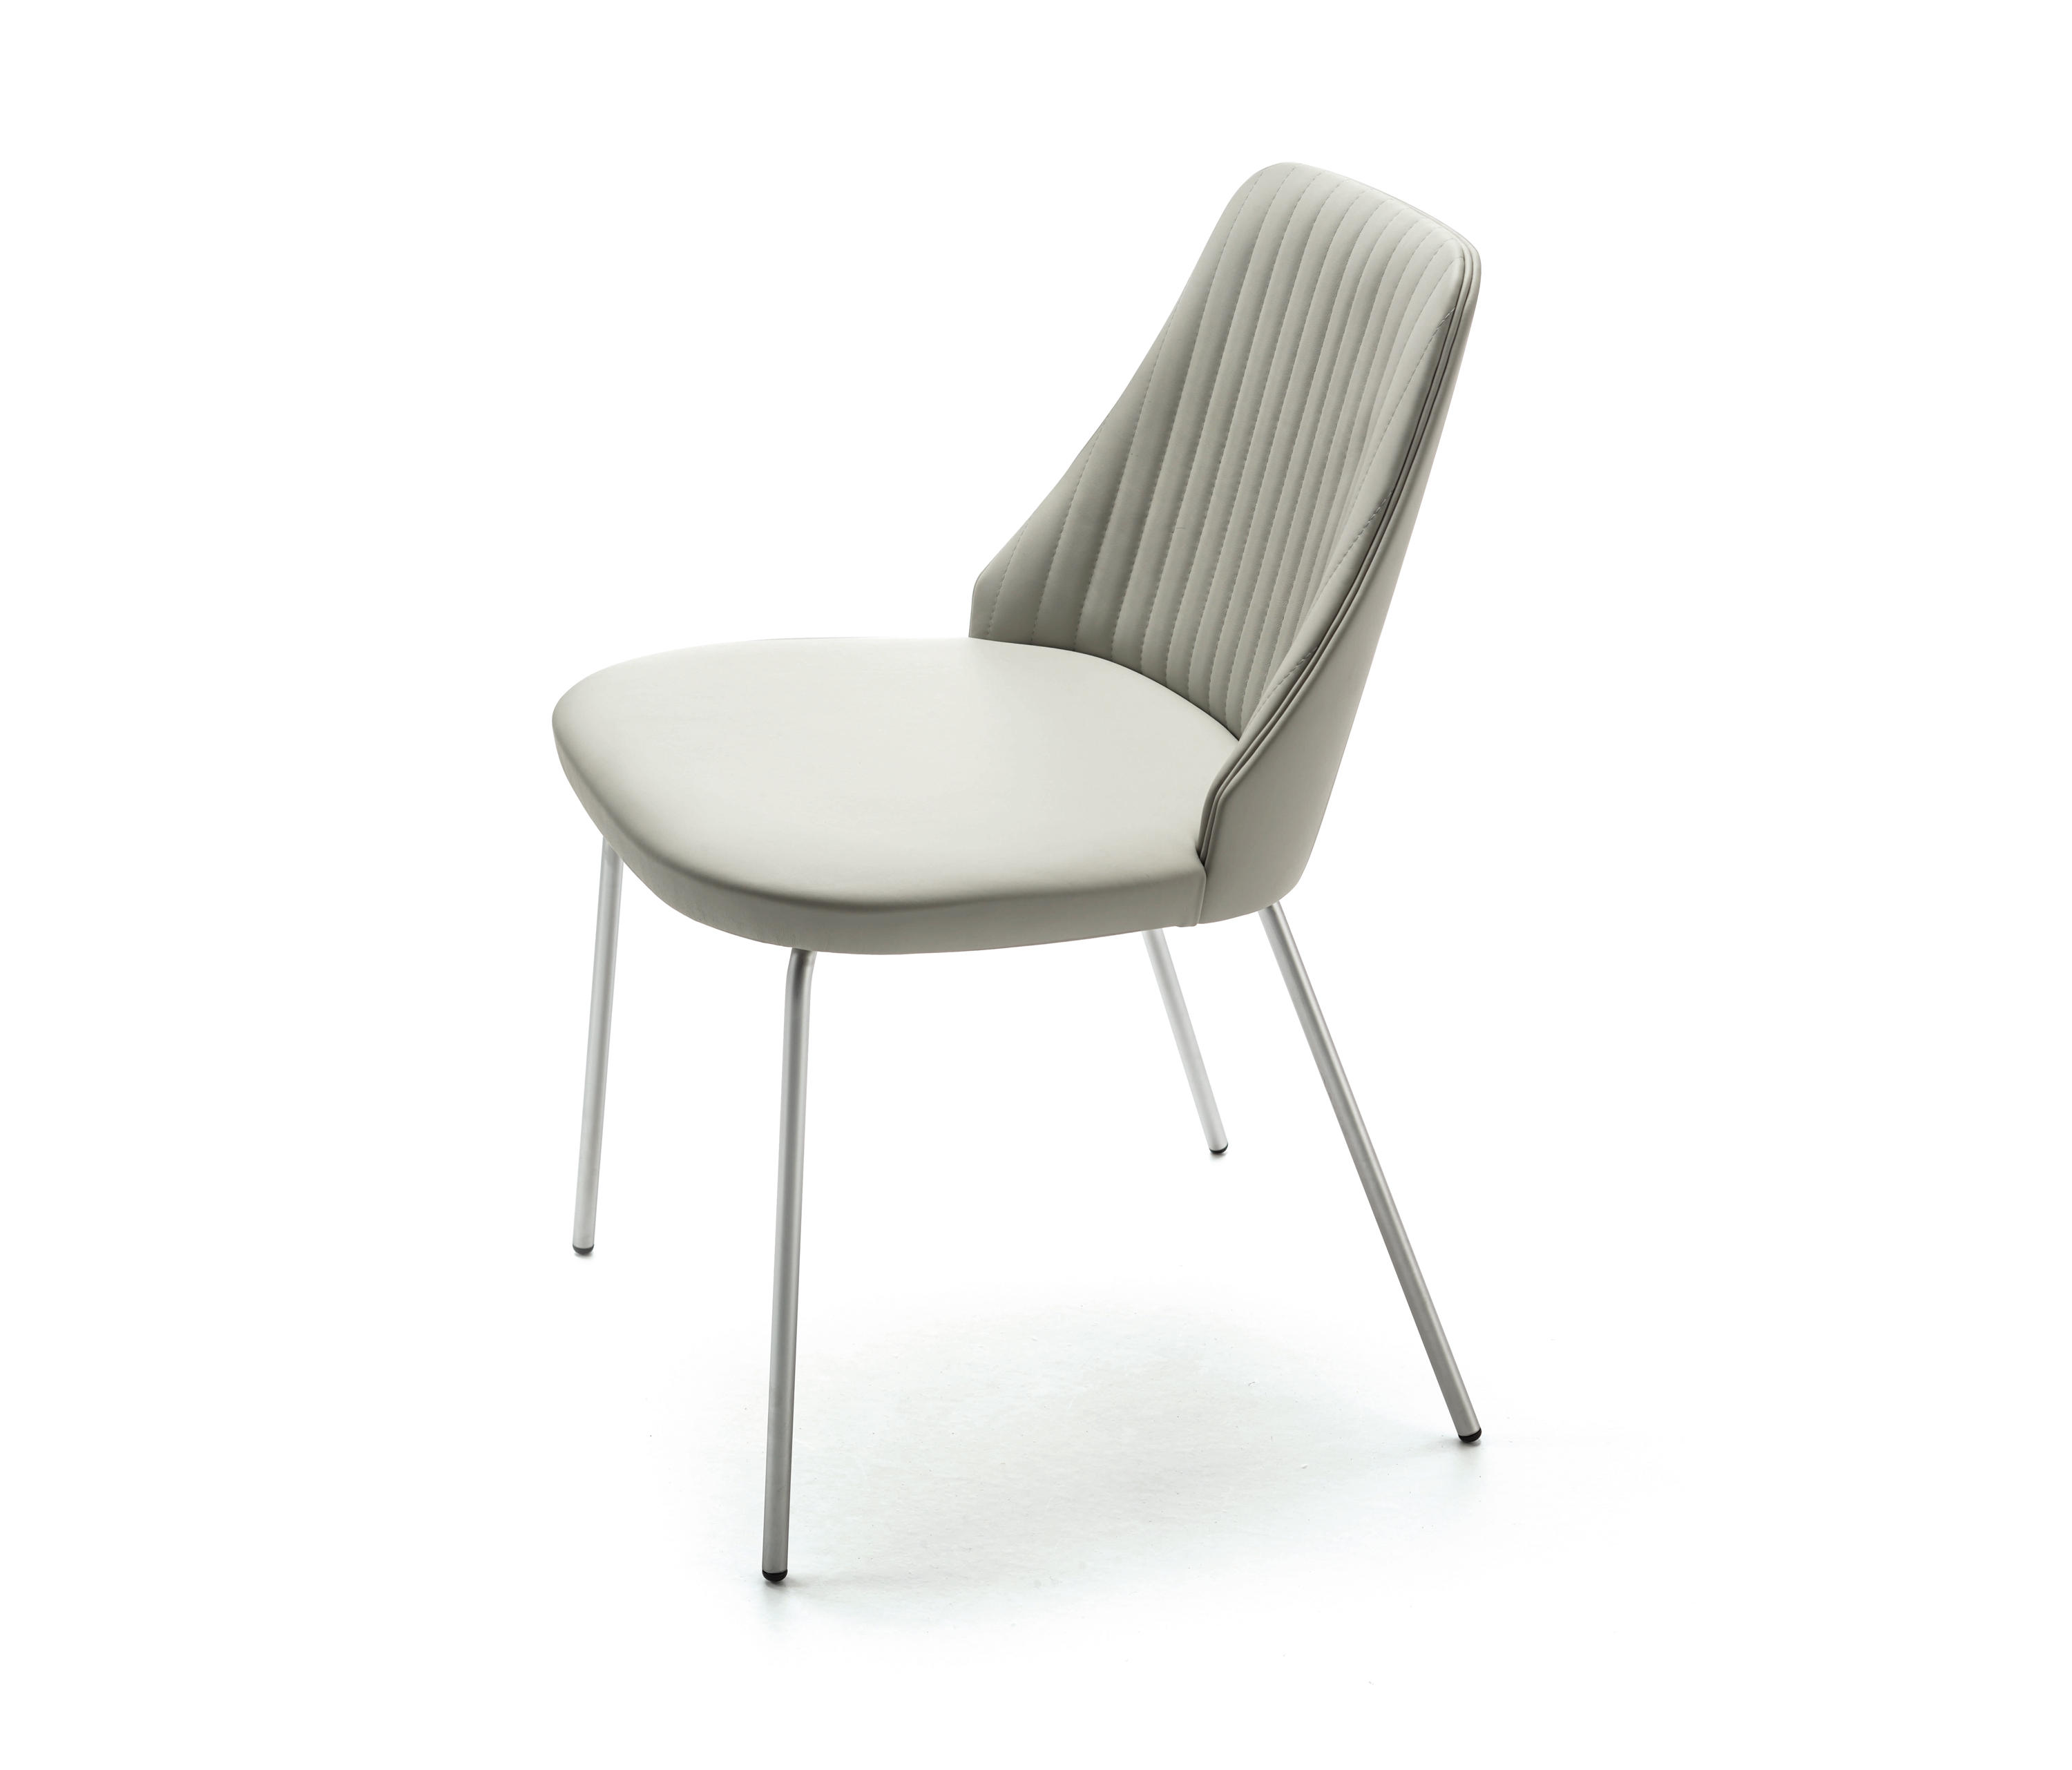 Break Chair Chairs From Bross Architonic